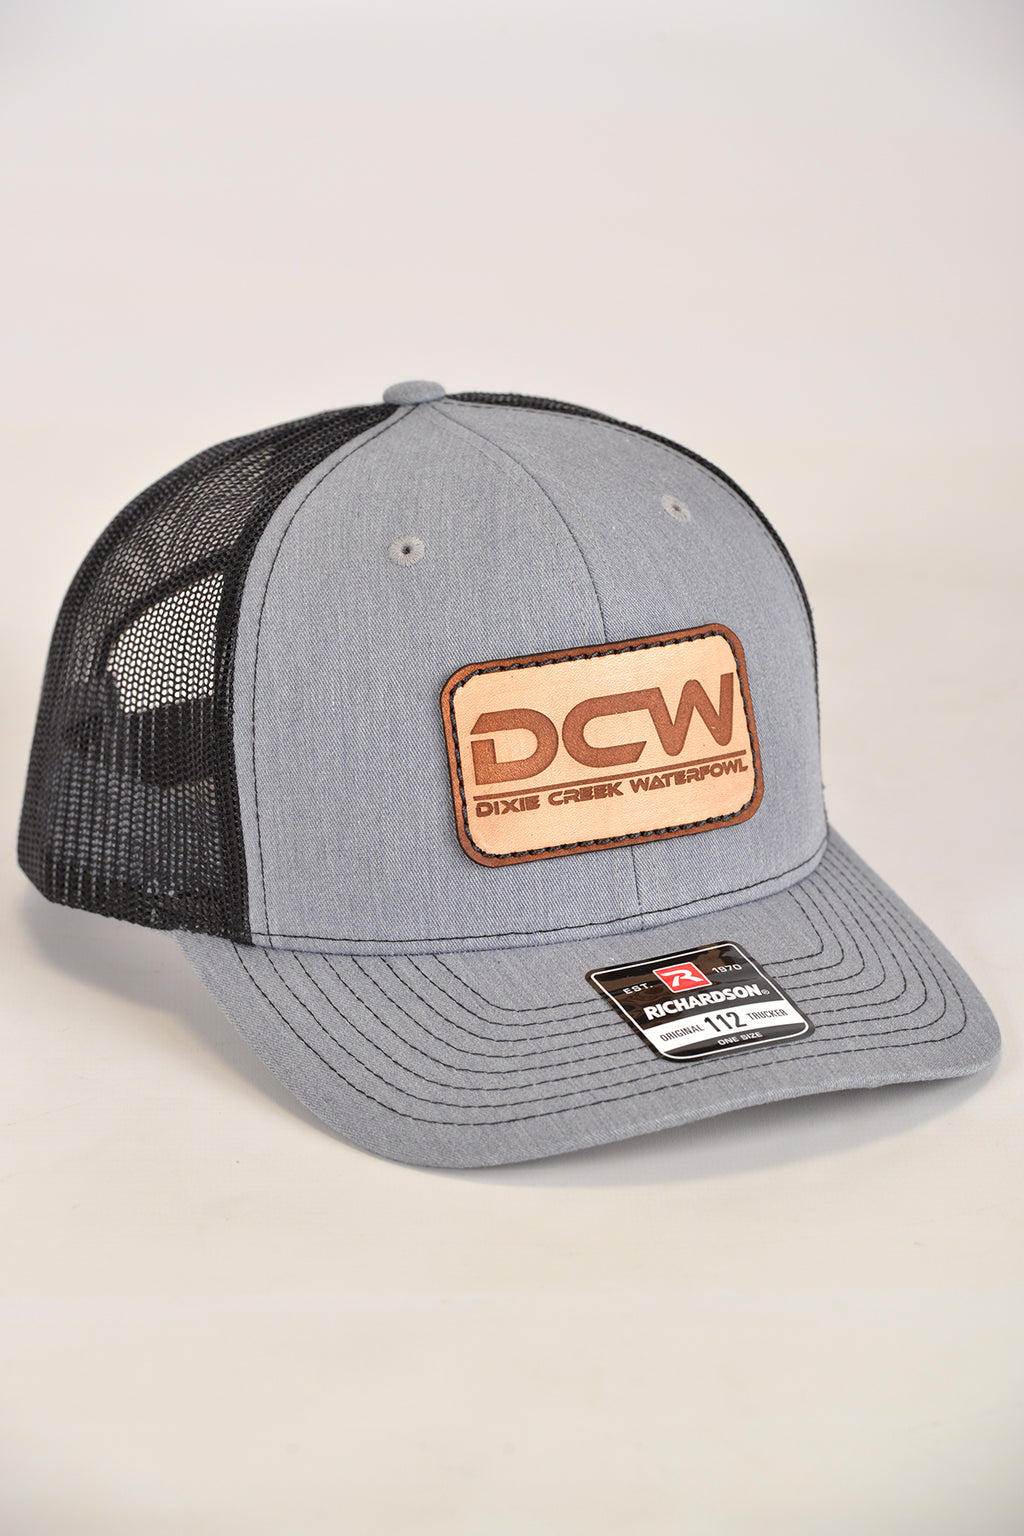 DCW With Leather Patch - HEATHER GREY/BLACK